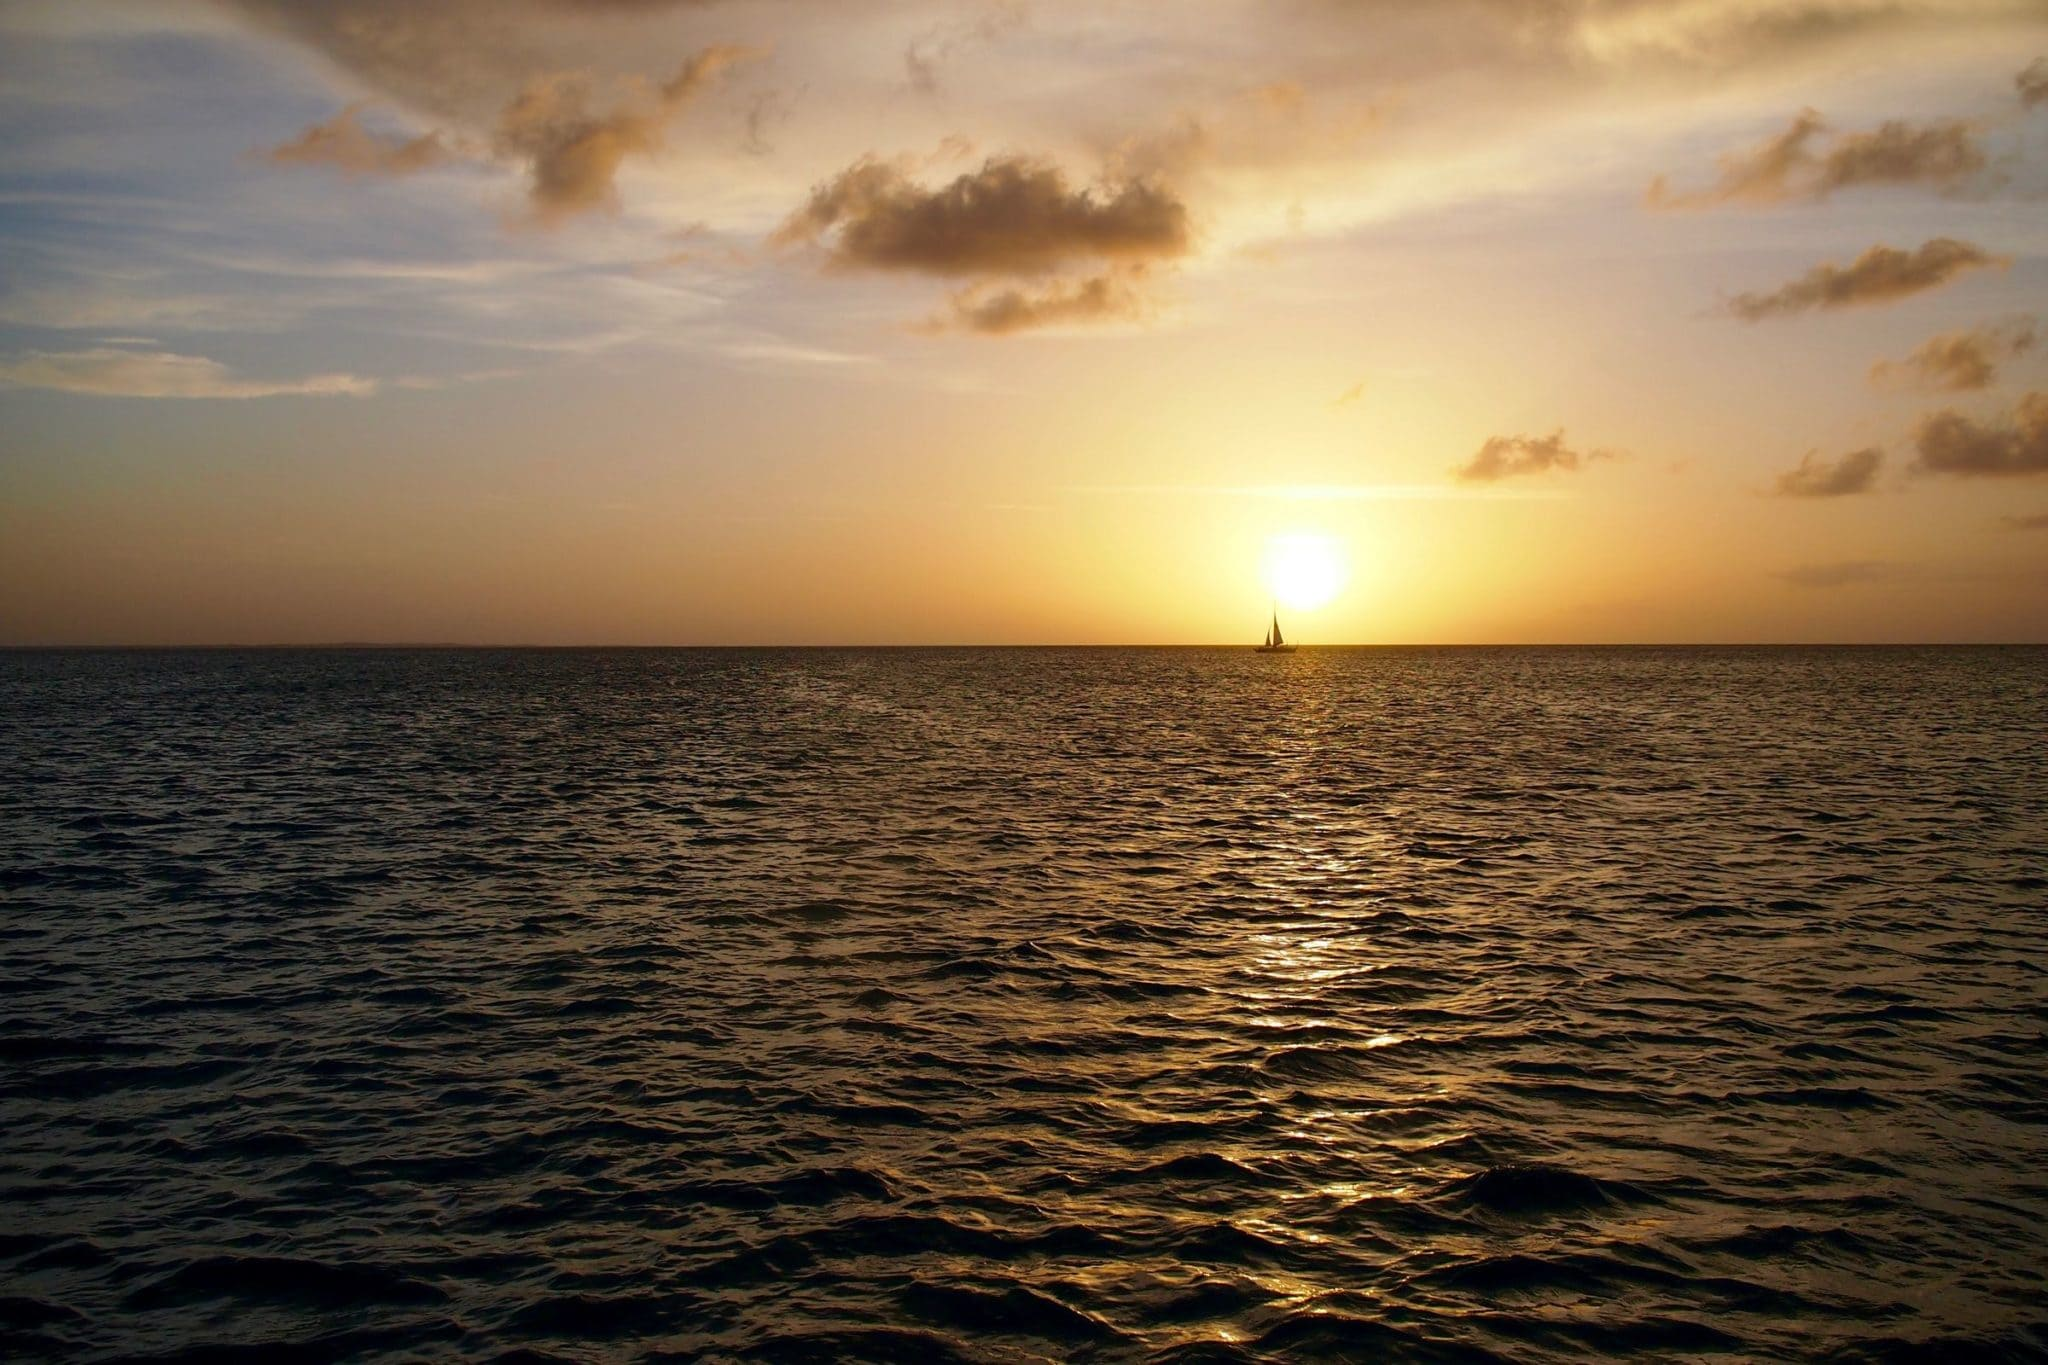 One Sailboat at Sunset in the Turks and Caicos